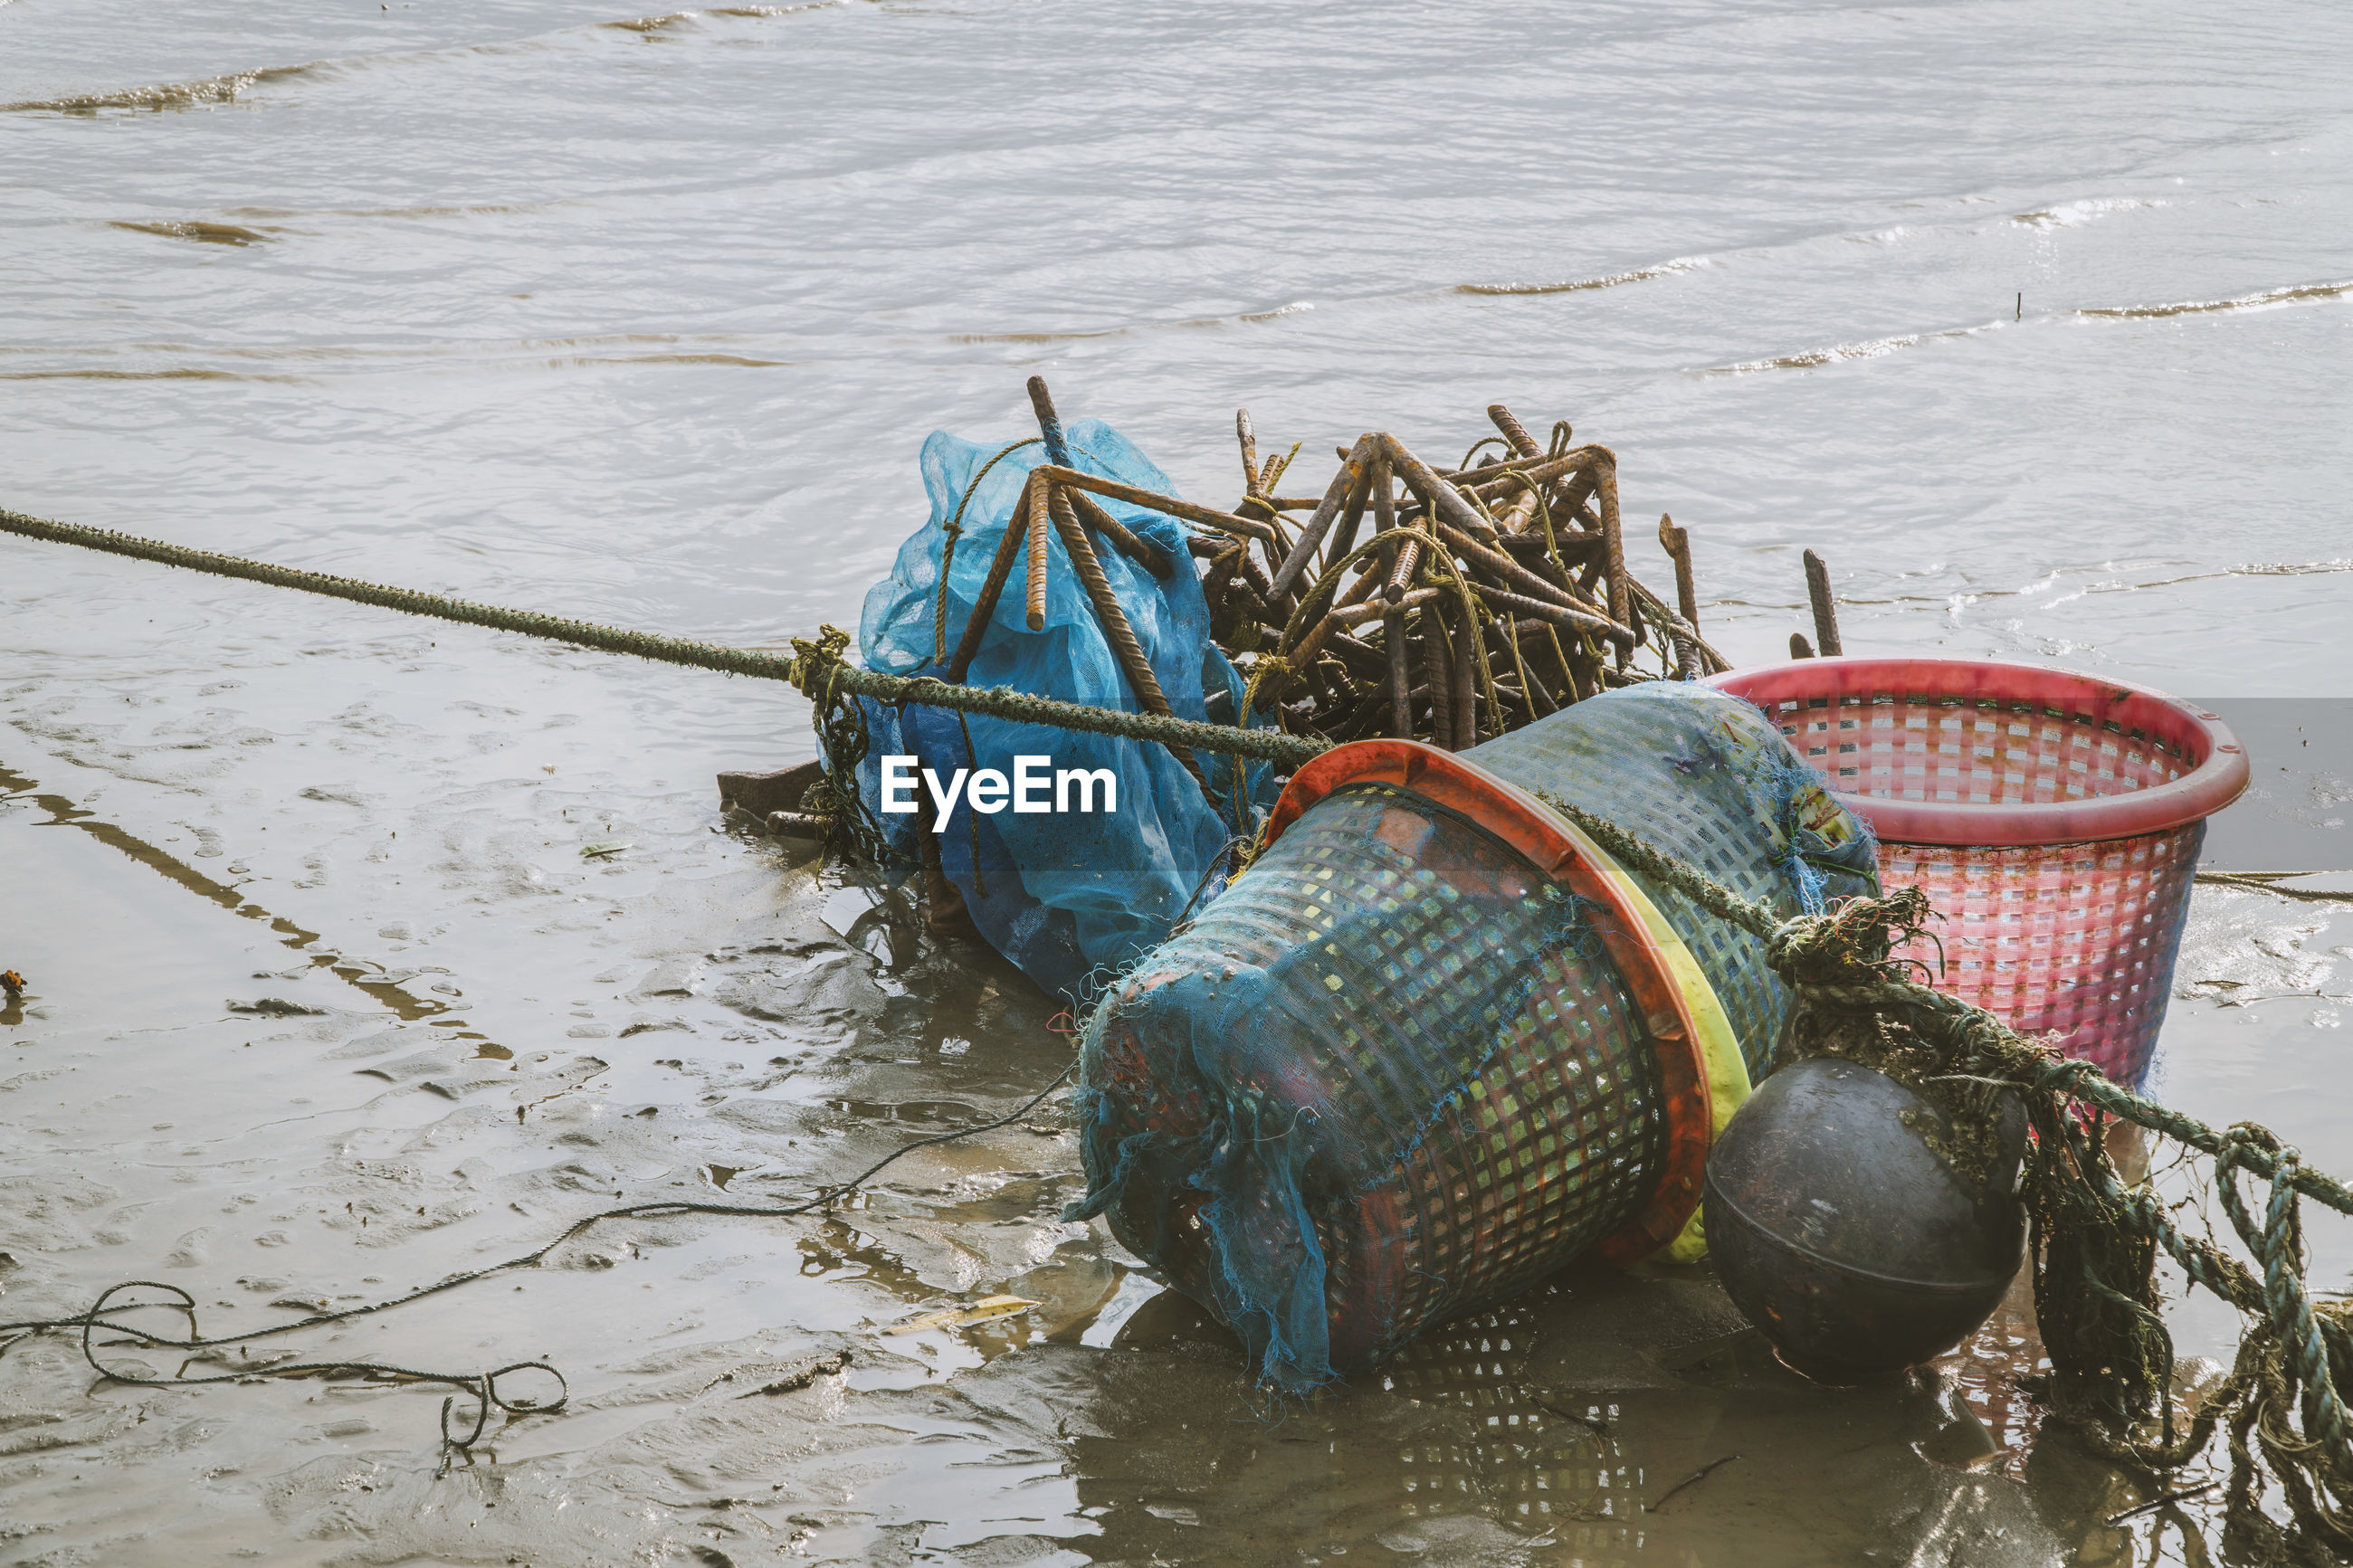 HIGH ANGLE VIEW OF FISHING NET ON BOAT